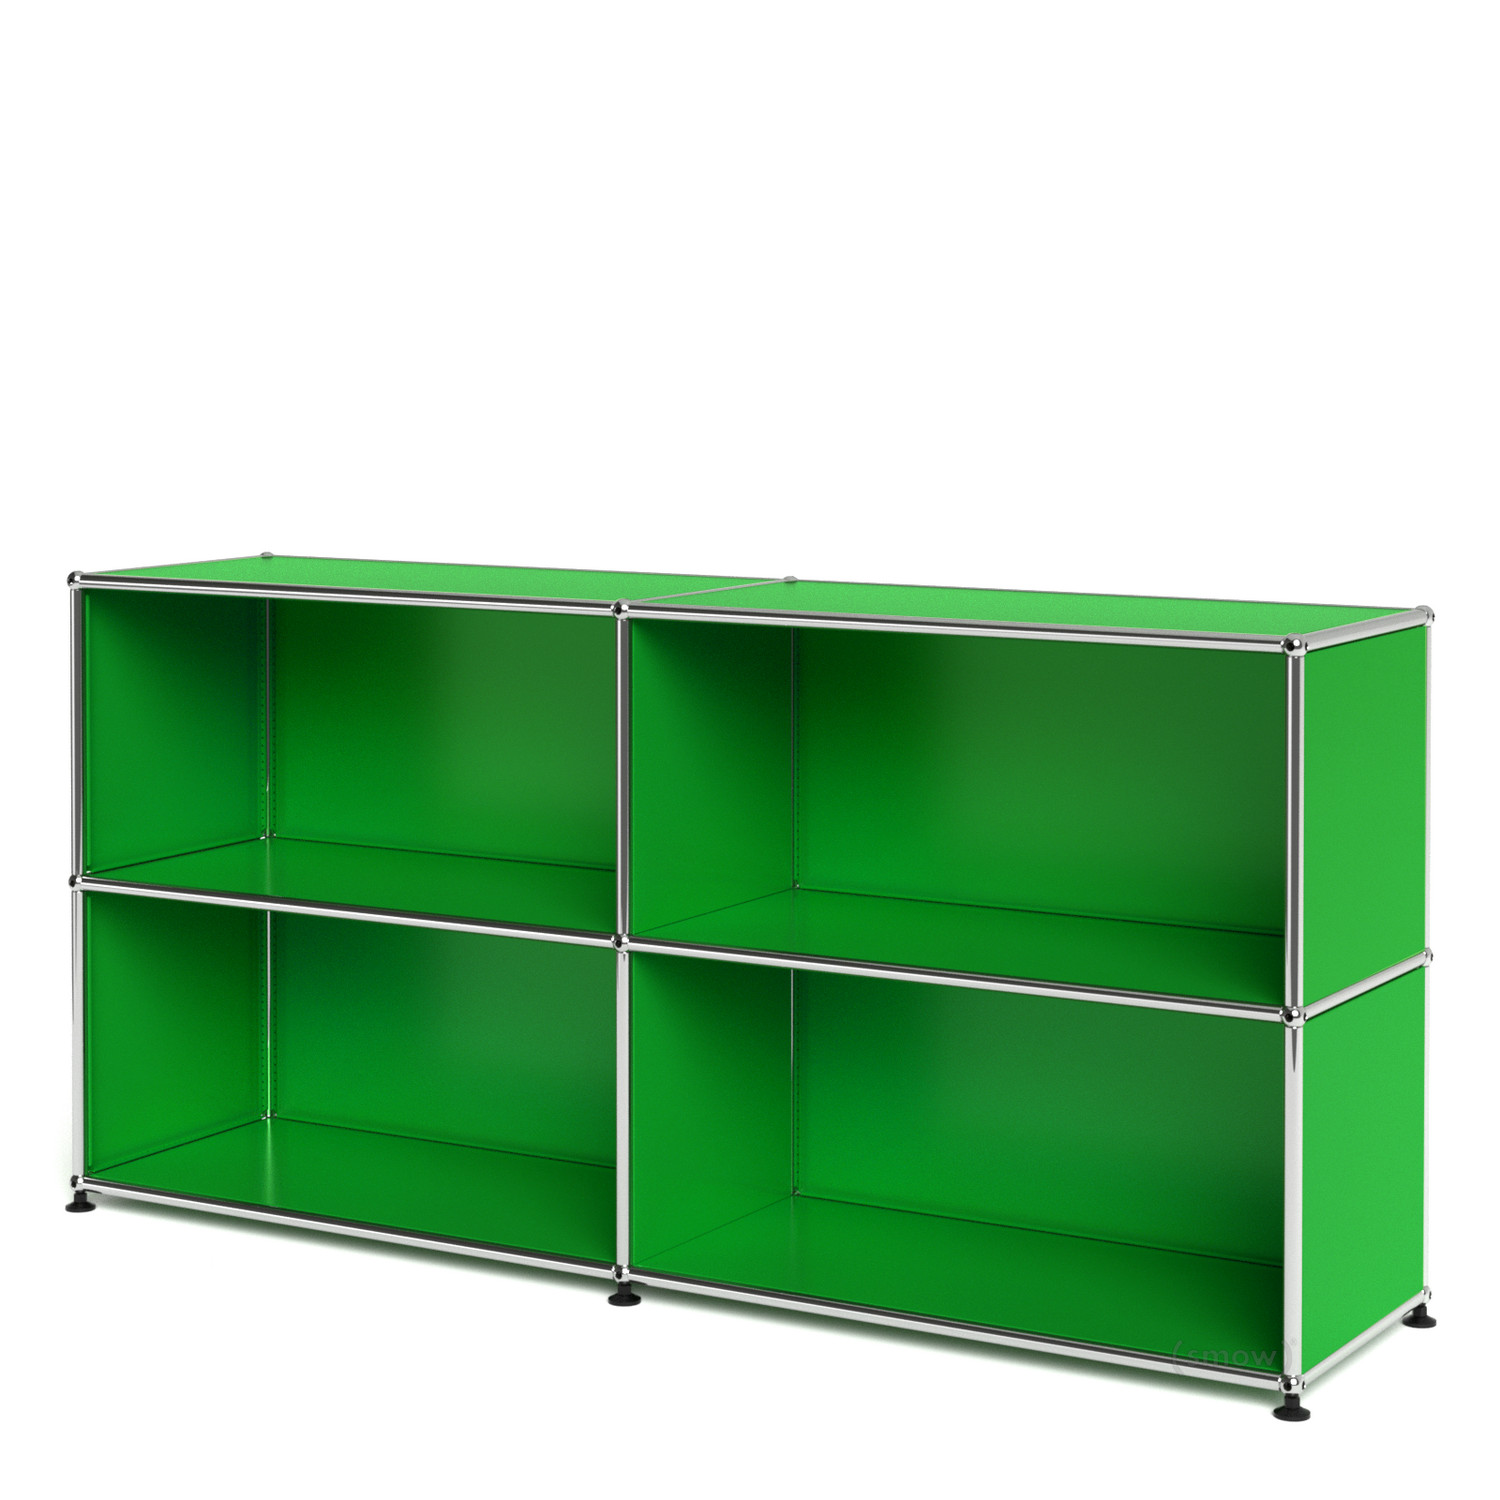 usm haller sideboard l offen usm gr n von fritz haller paul sch rer designerm bel von. Black Bedroom Furniture Sets. Home Design Ideas